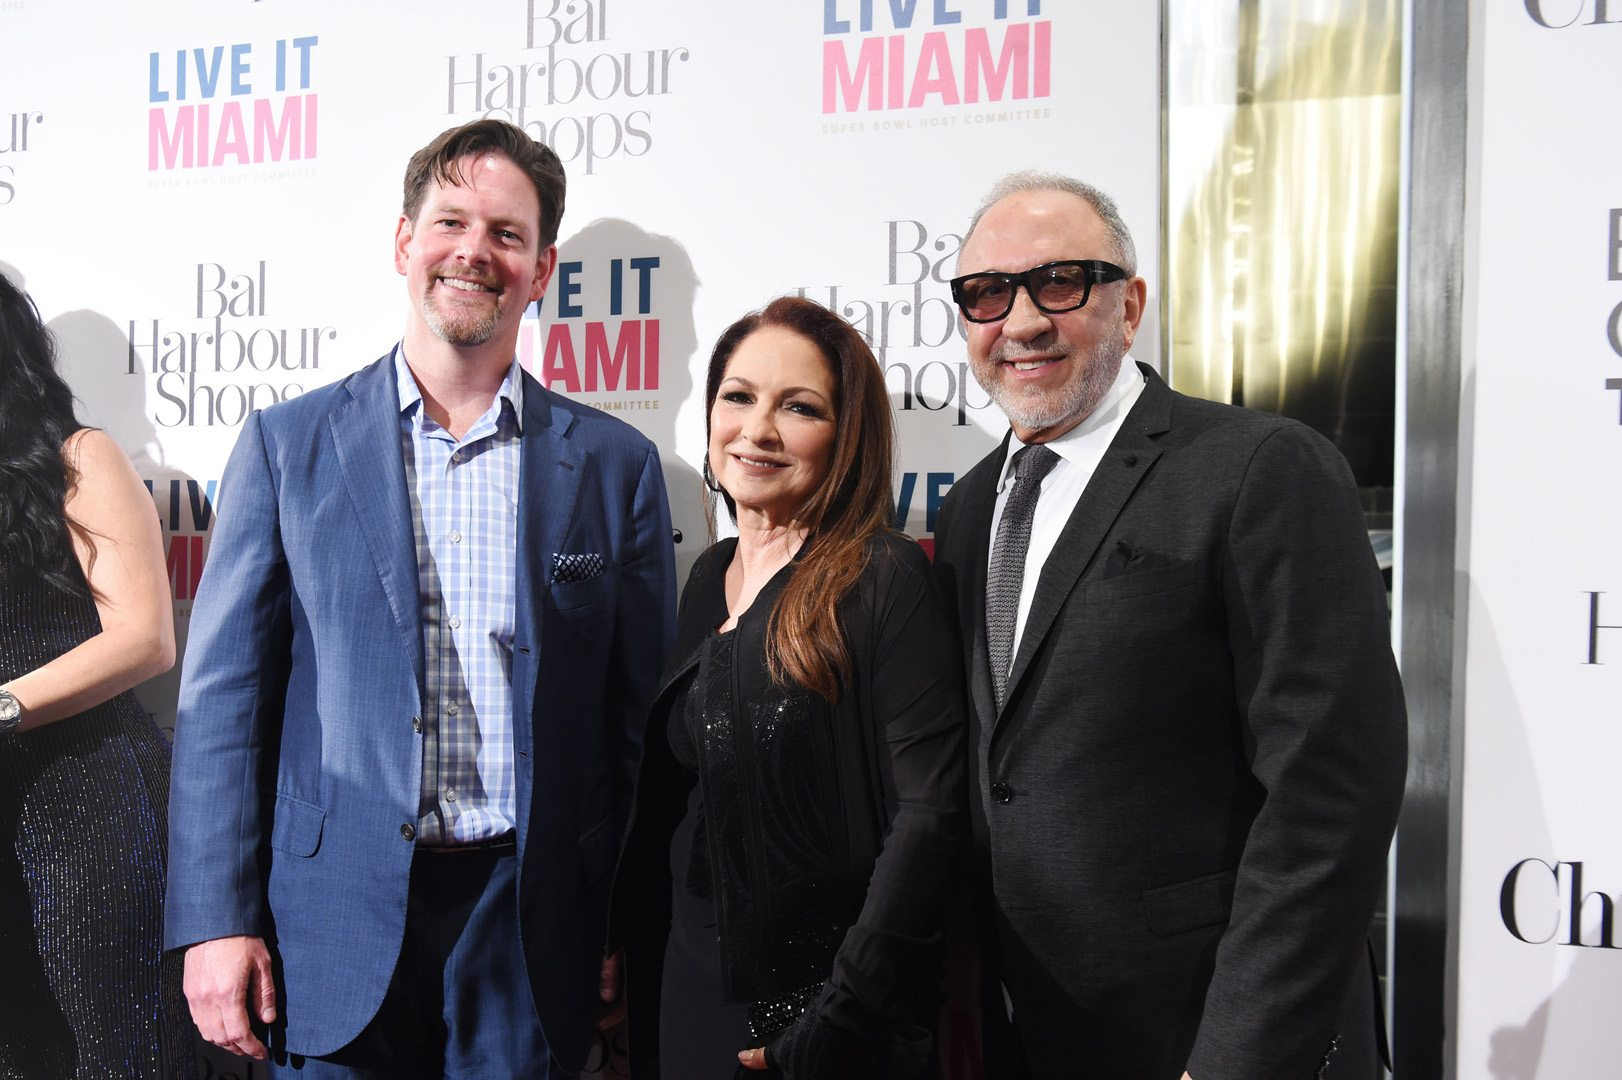 Matthew Whitman Lazenby, Gloria Estefan and Emilio Estefan